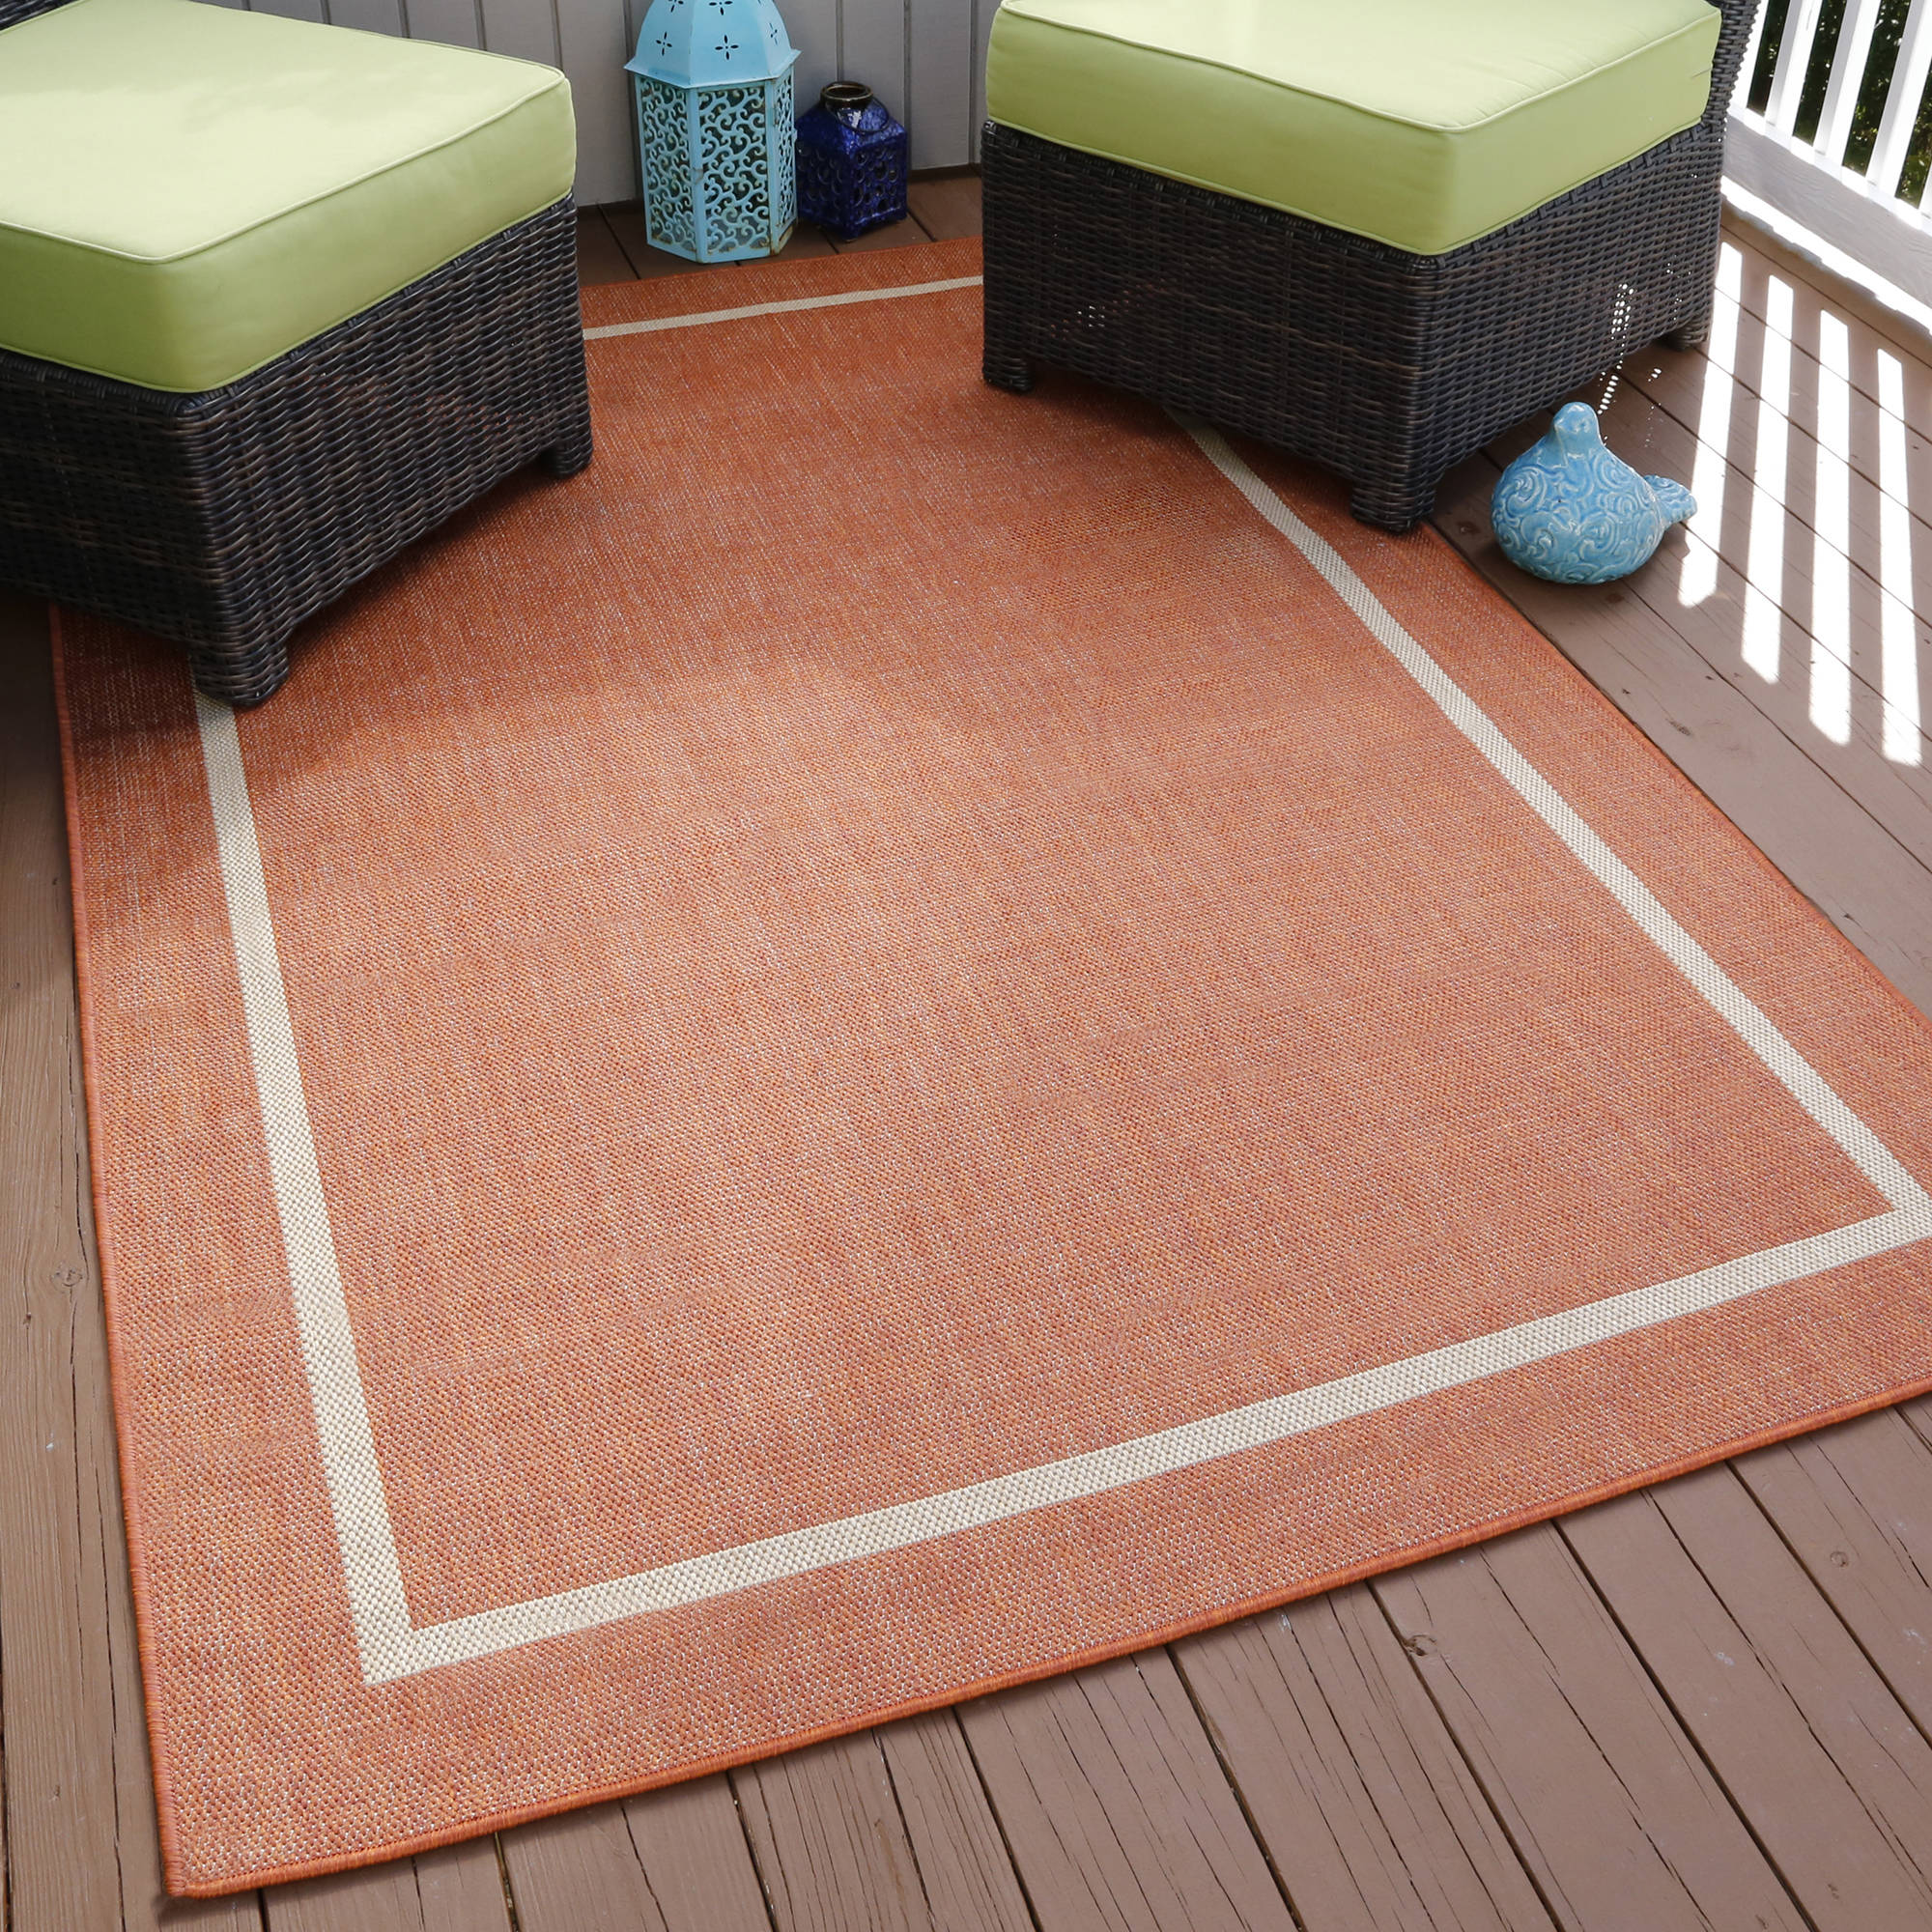 Somerset Home Border Indoor/Outdoor Area Rug, Orange, 5' x 7'7""